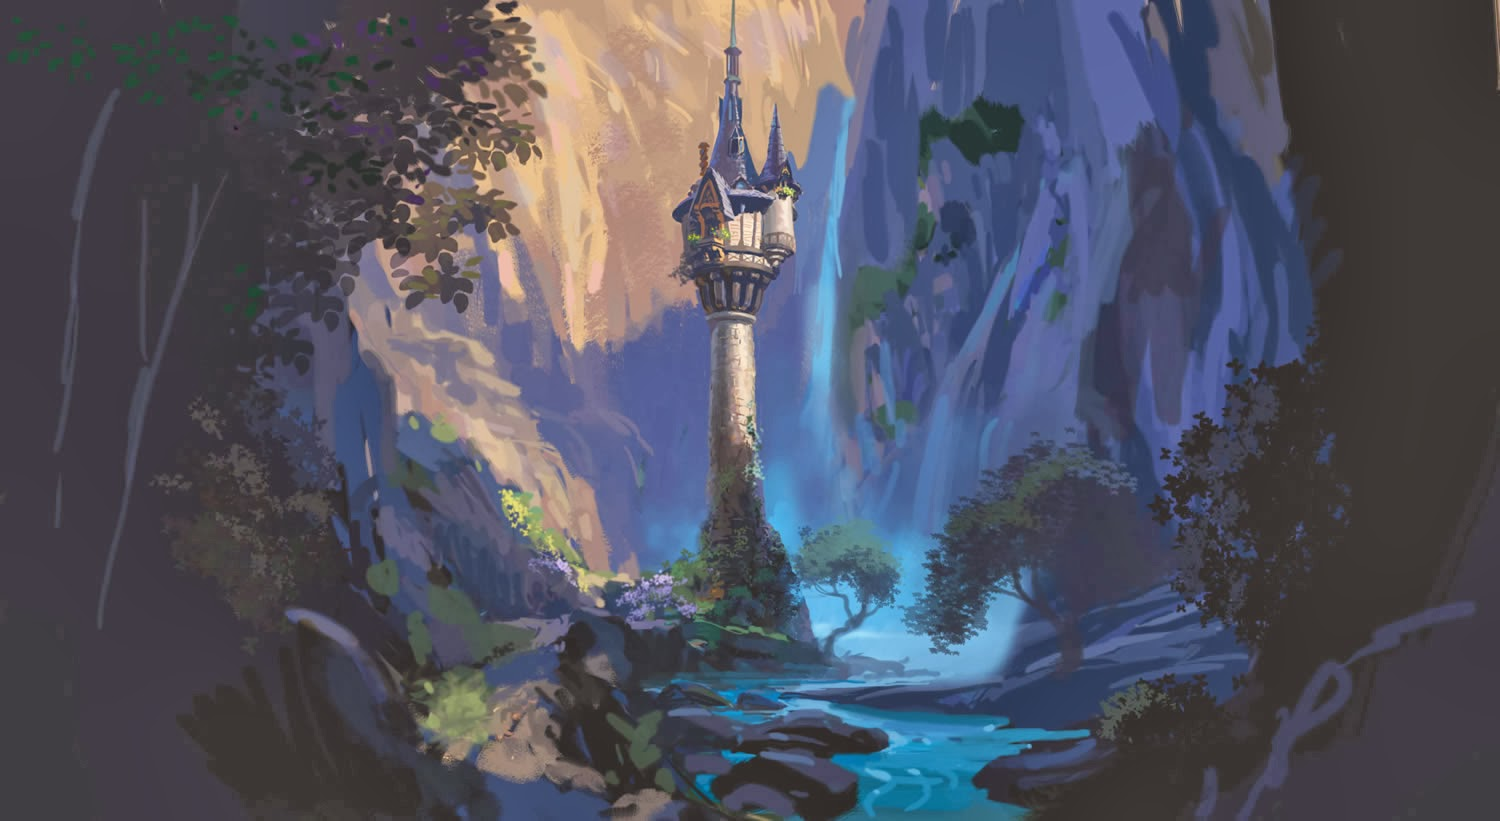 rapunzel tower concept art tangled wallpaperjpg 1500x821